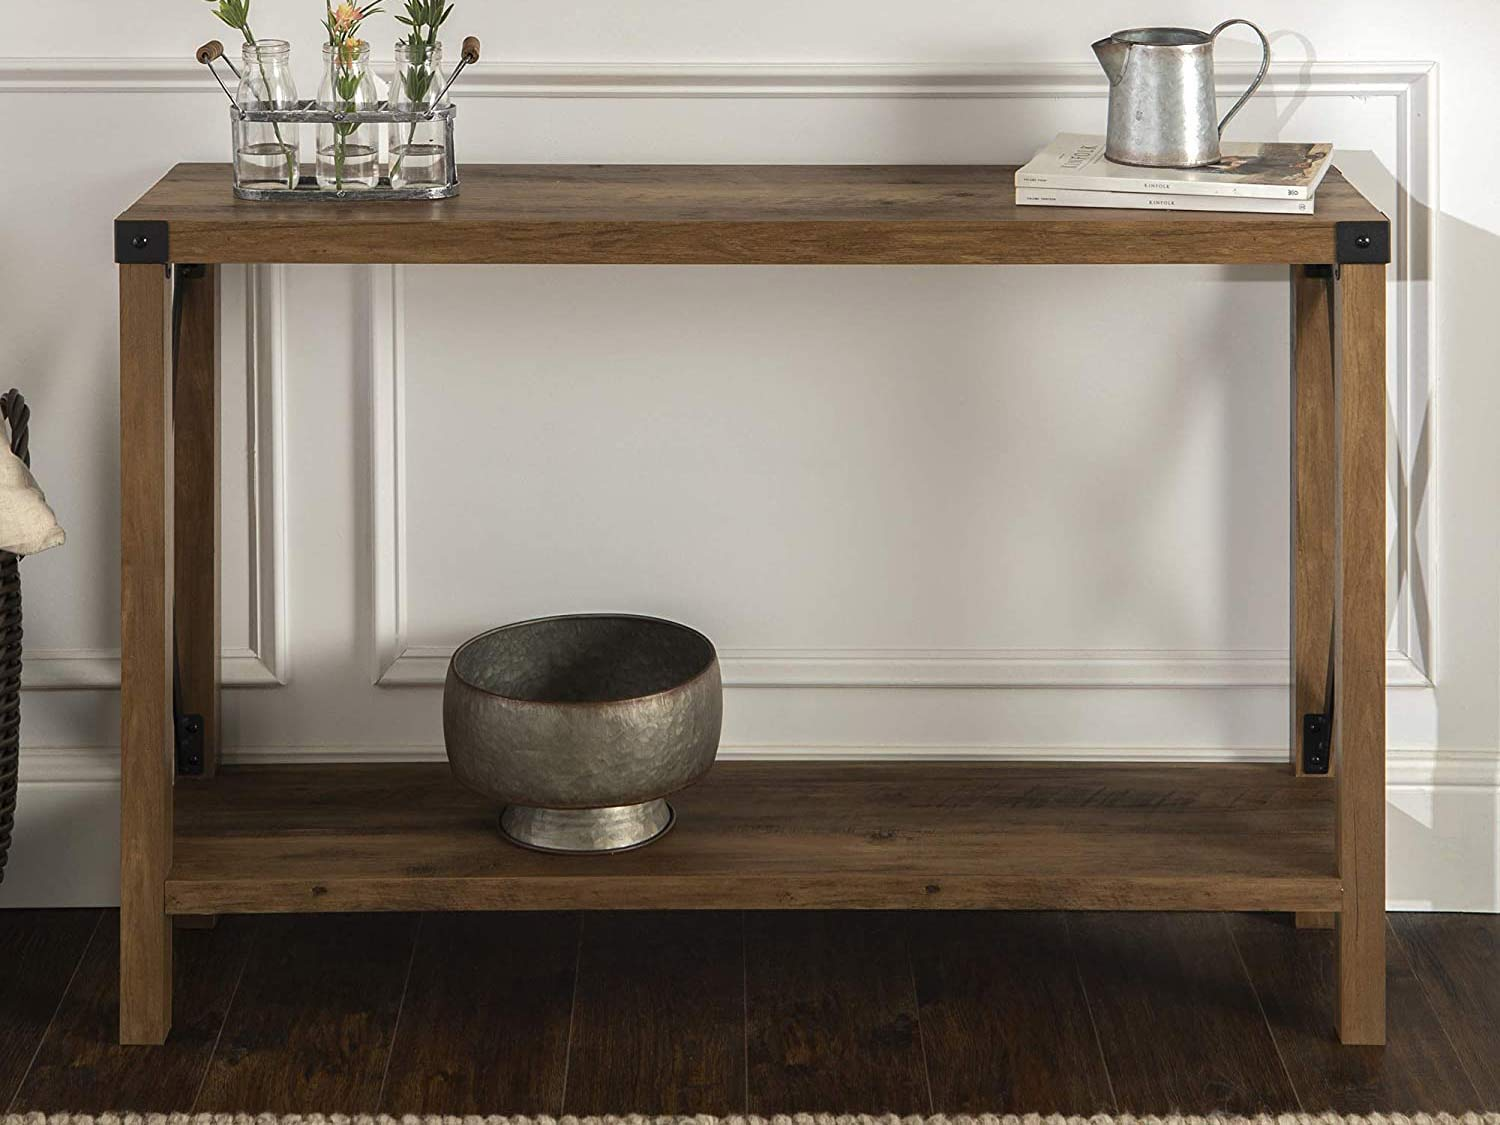 WE Furniture Farmhouse Sqaure Accent Entryway Table, 46 Inch, Brown Reclaimed Barnwood